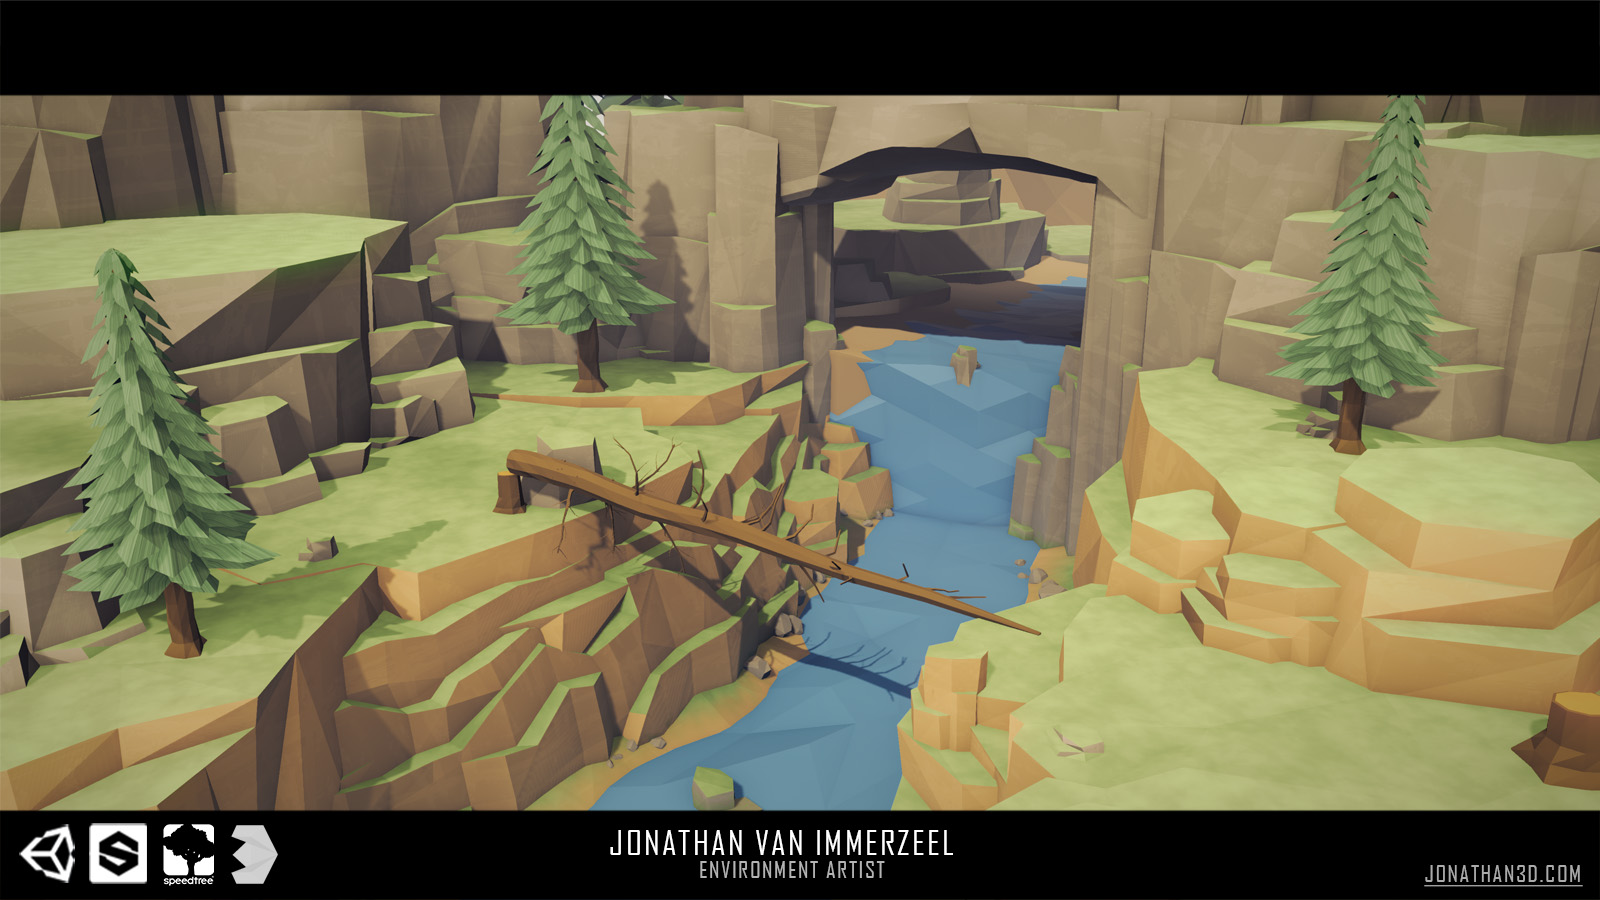 Lowpoly works